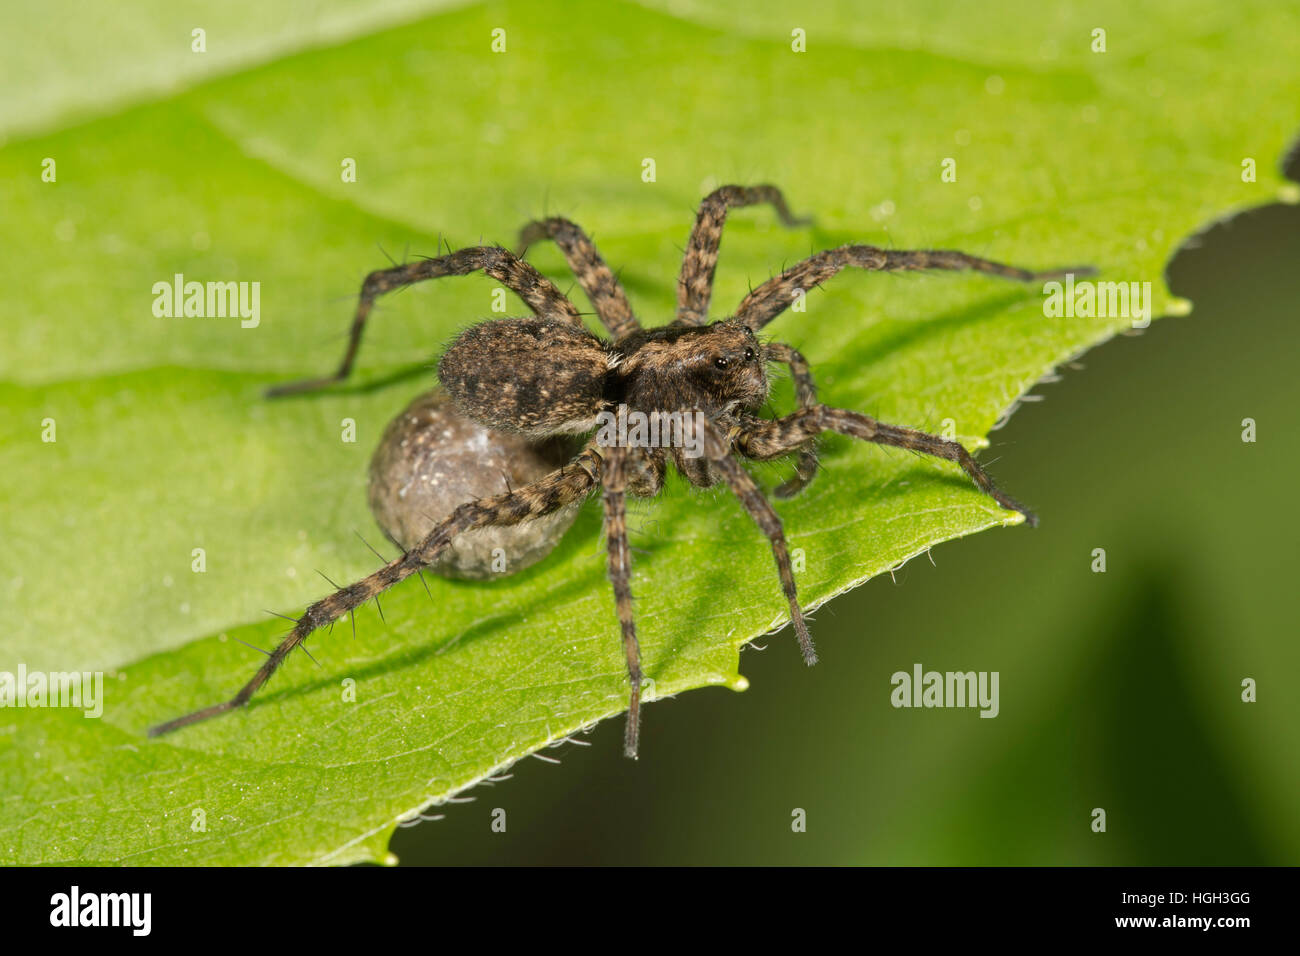 Spotted wolf spider (Pardosa amentata), female with egg sac, Baden-Württemberg, Germany - Stock Image